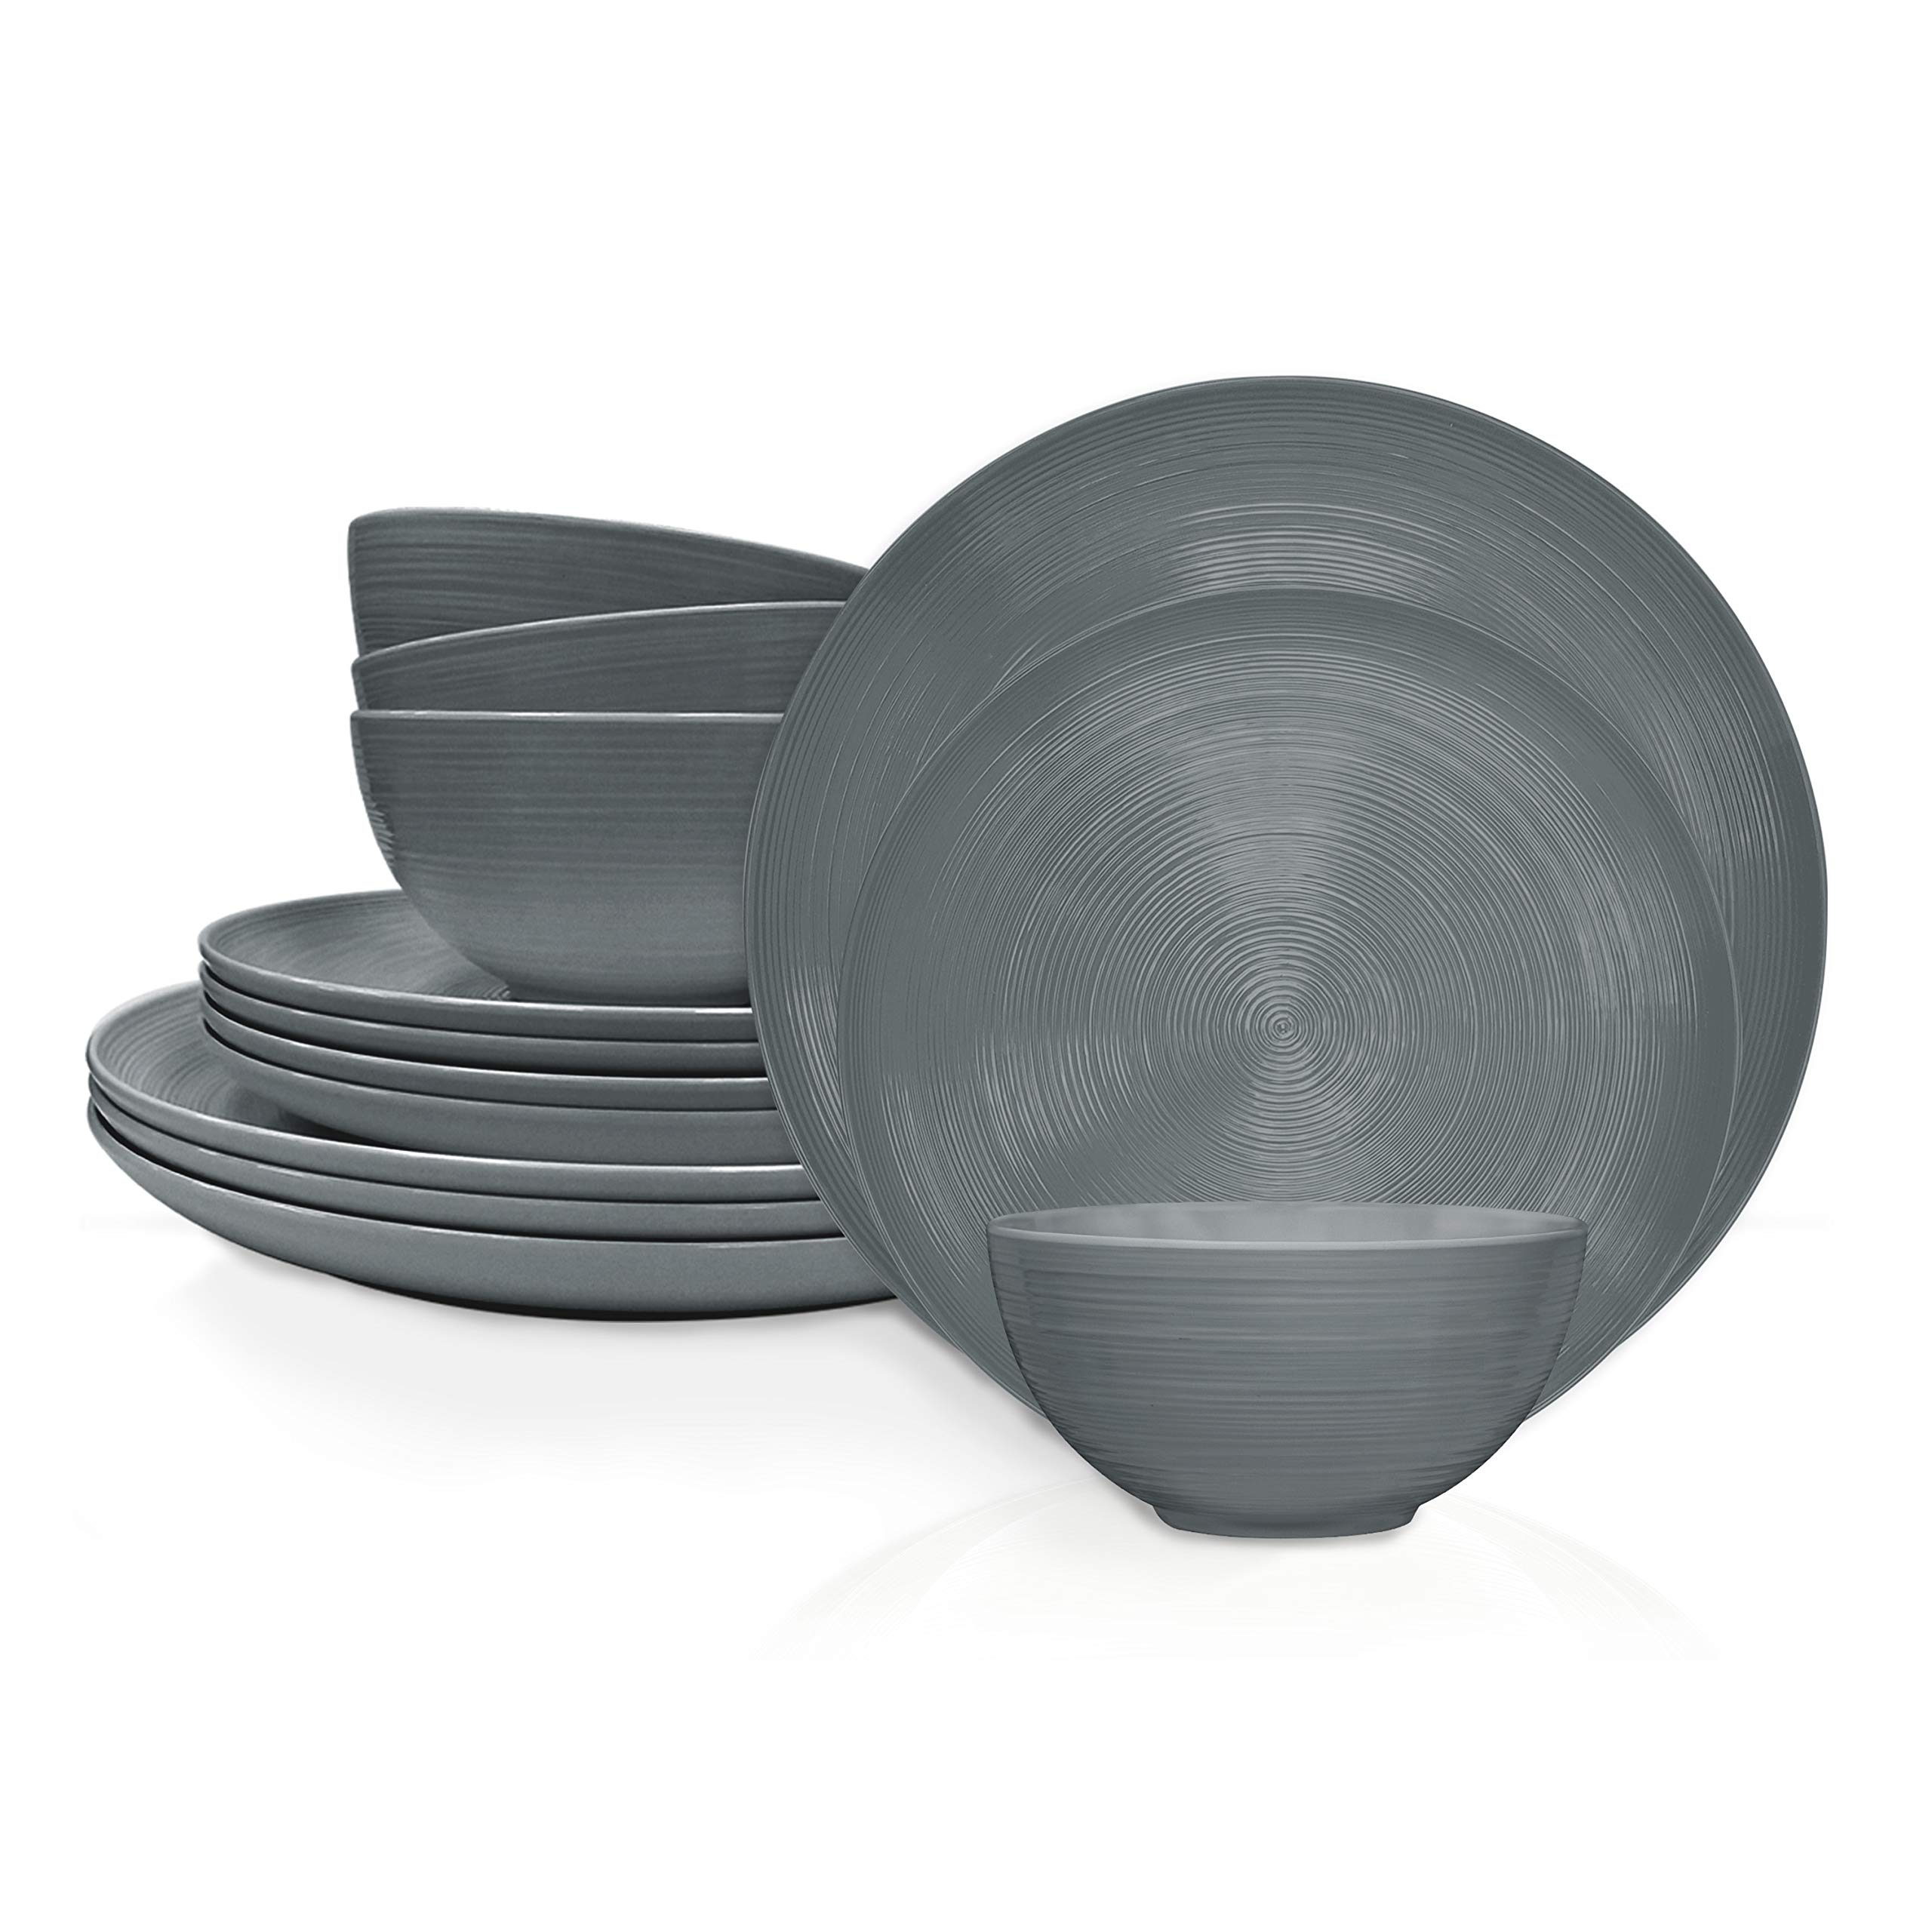 Zak Designs American Conventional Melamine 12 Piece Dinnerware Set Service for 4 Includes Dinner Plates, Salad Plates, and Individual Bowls, Durable and BPA Free (Charcoal)